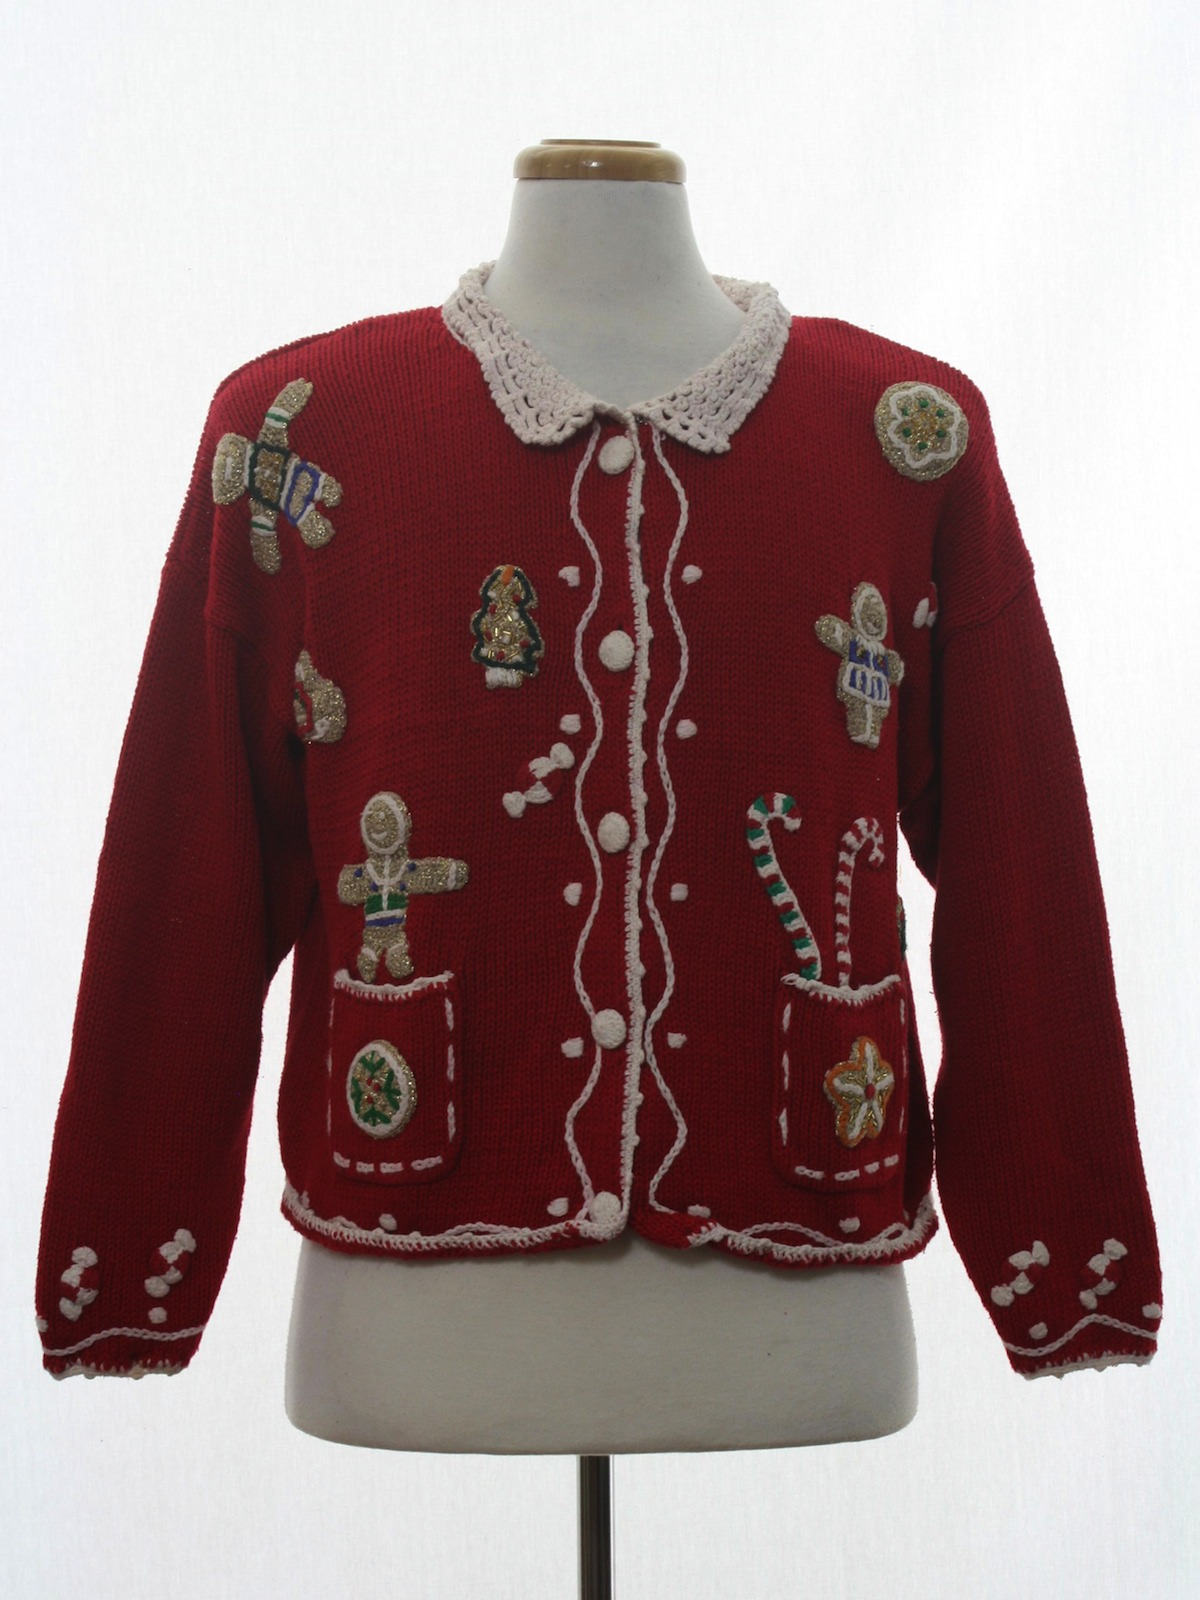 Retro 1990s Womens Ugly Christmas Sweater 90s Authentic